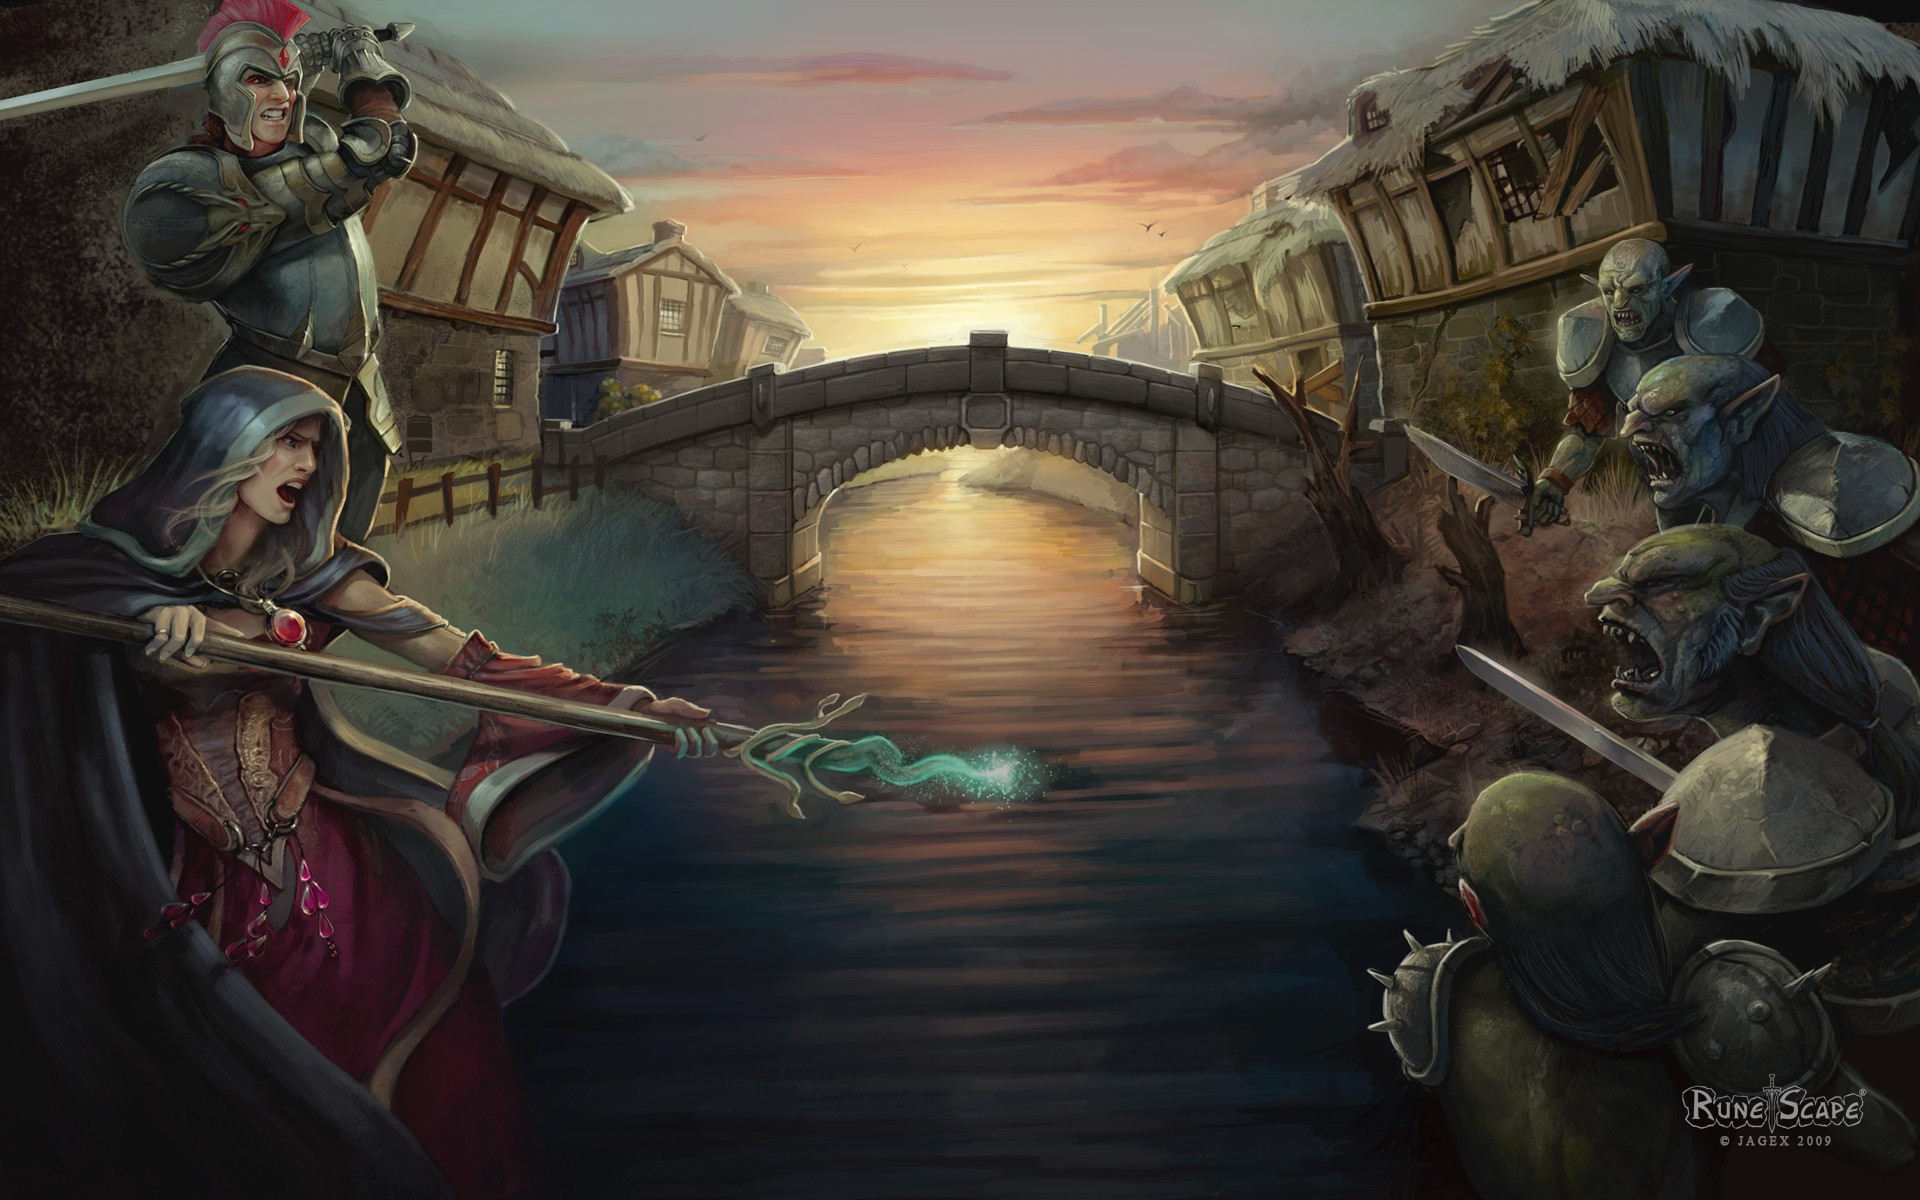 Runescape Full HD Wallpaper And Background Image